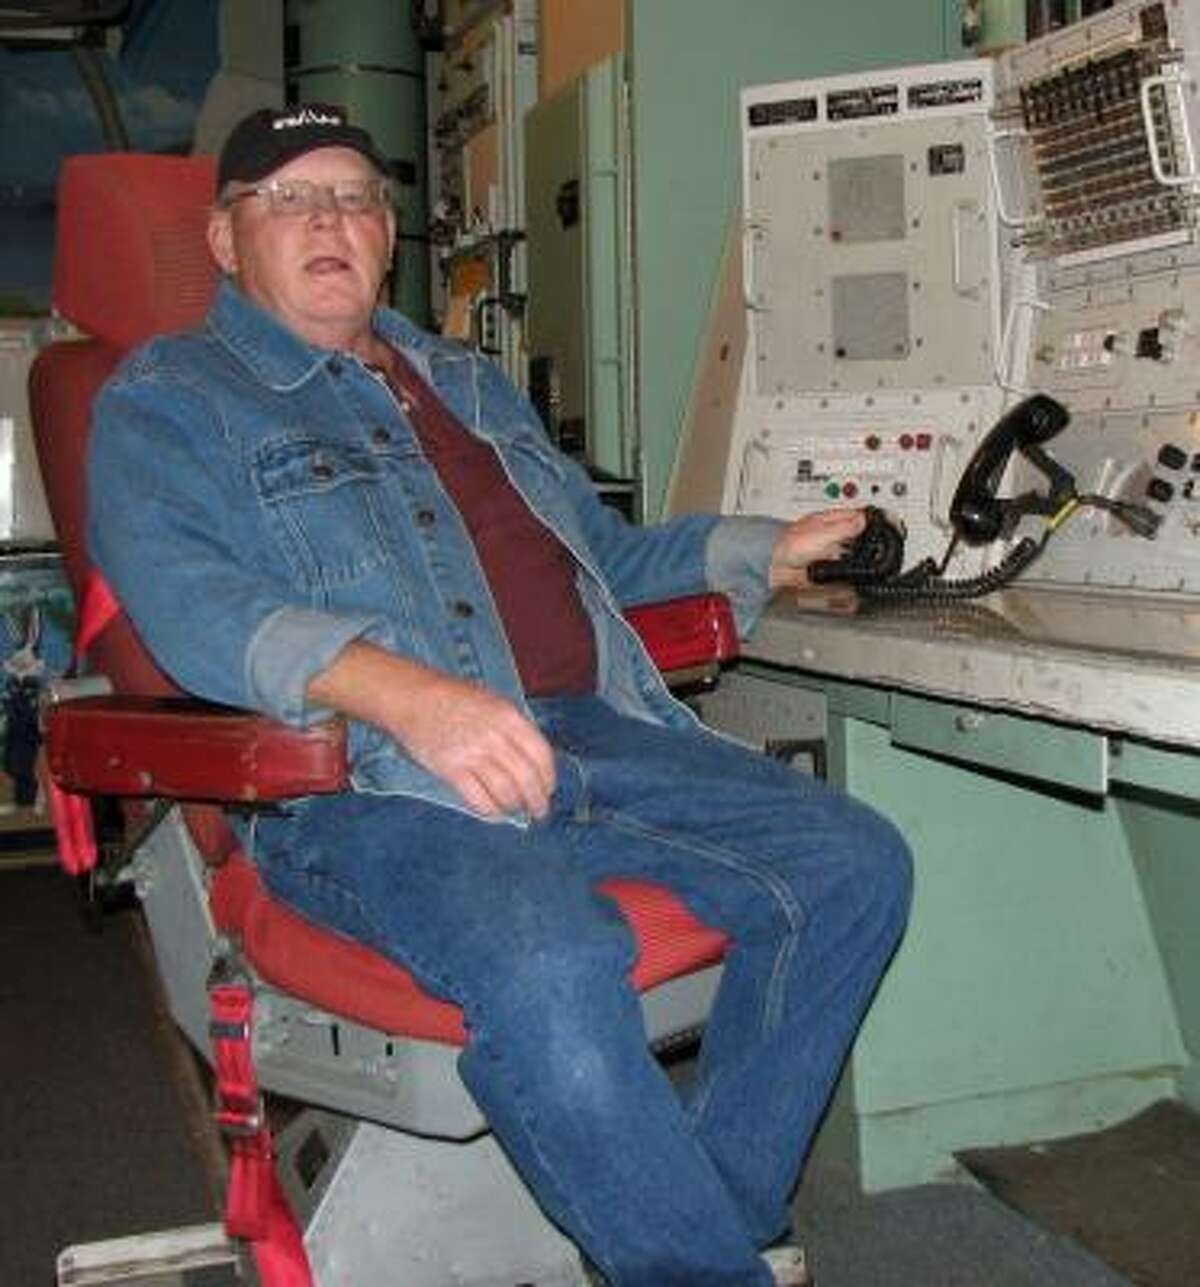 John Clark of Cooperstown, N.D., maintains Oscar Zero just as it was on July 17, 1997, the day it closed.